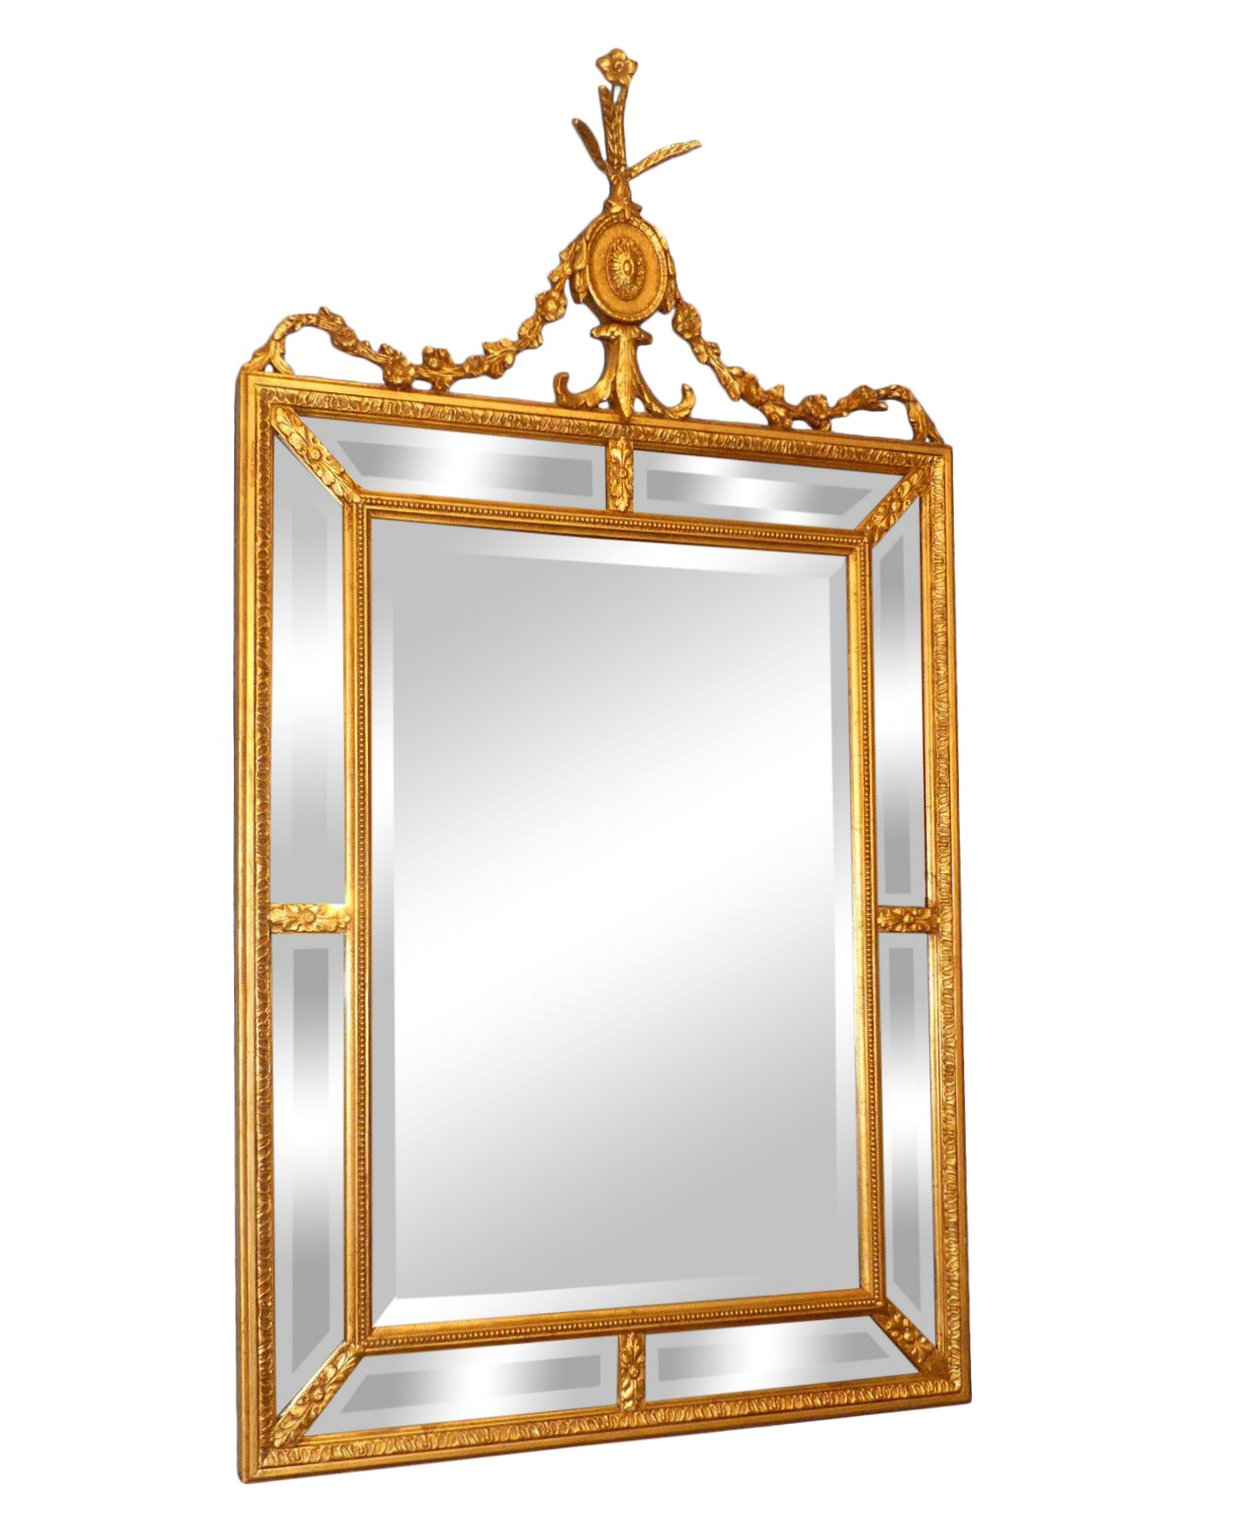 SOLD Giltwood Mirror with Beveled Mirror Panels 32x58